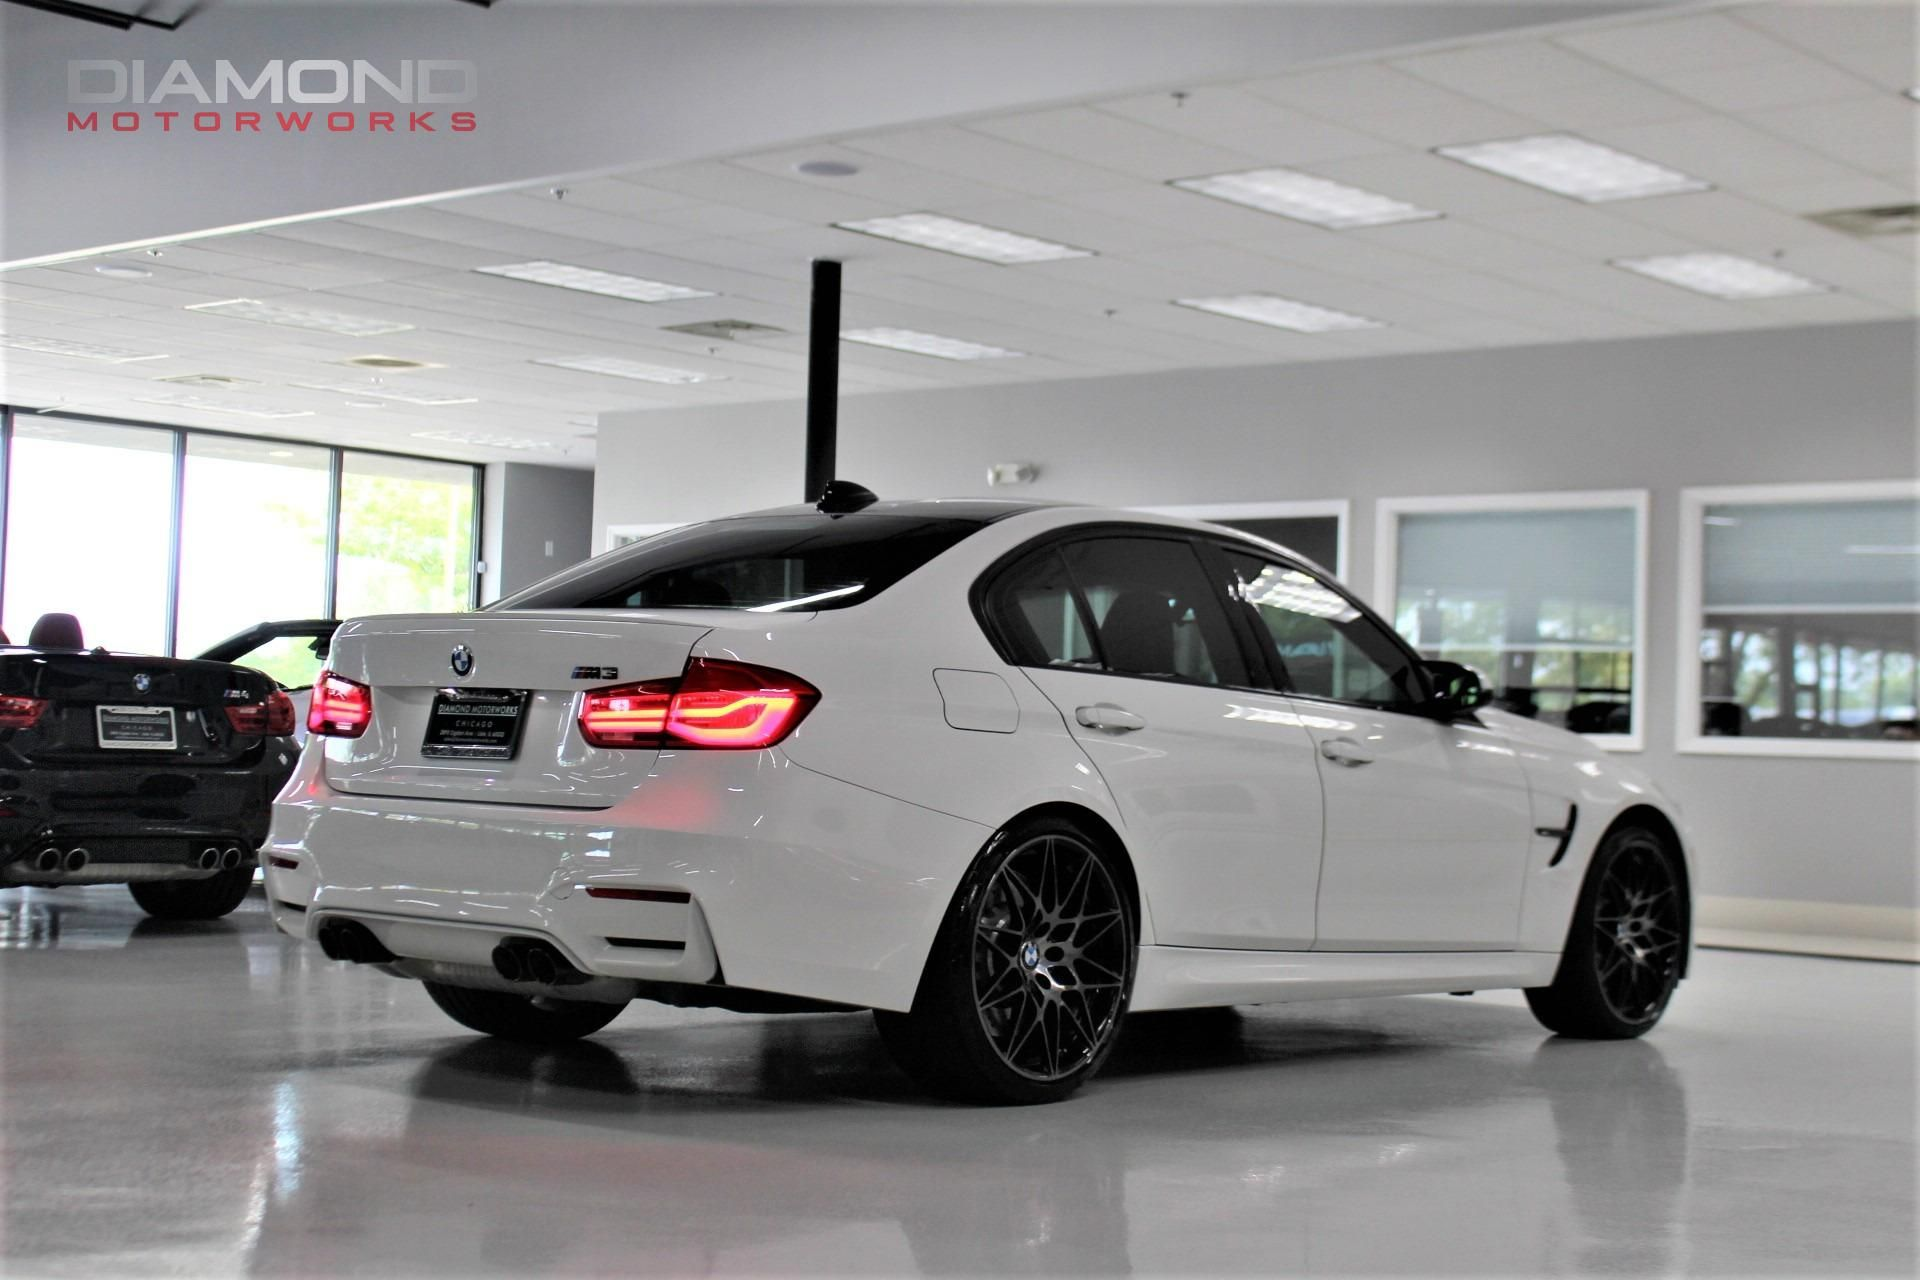 2018 Bmw M3 Competition Package Stock J78596 For Sale Near Lisle Il Il Bmw Dealer In 2020 Bmw Dealer Bmw Bmw M3